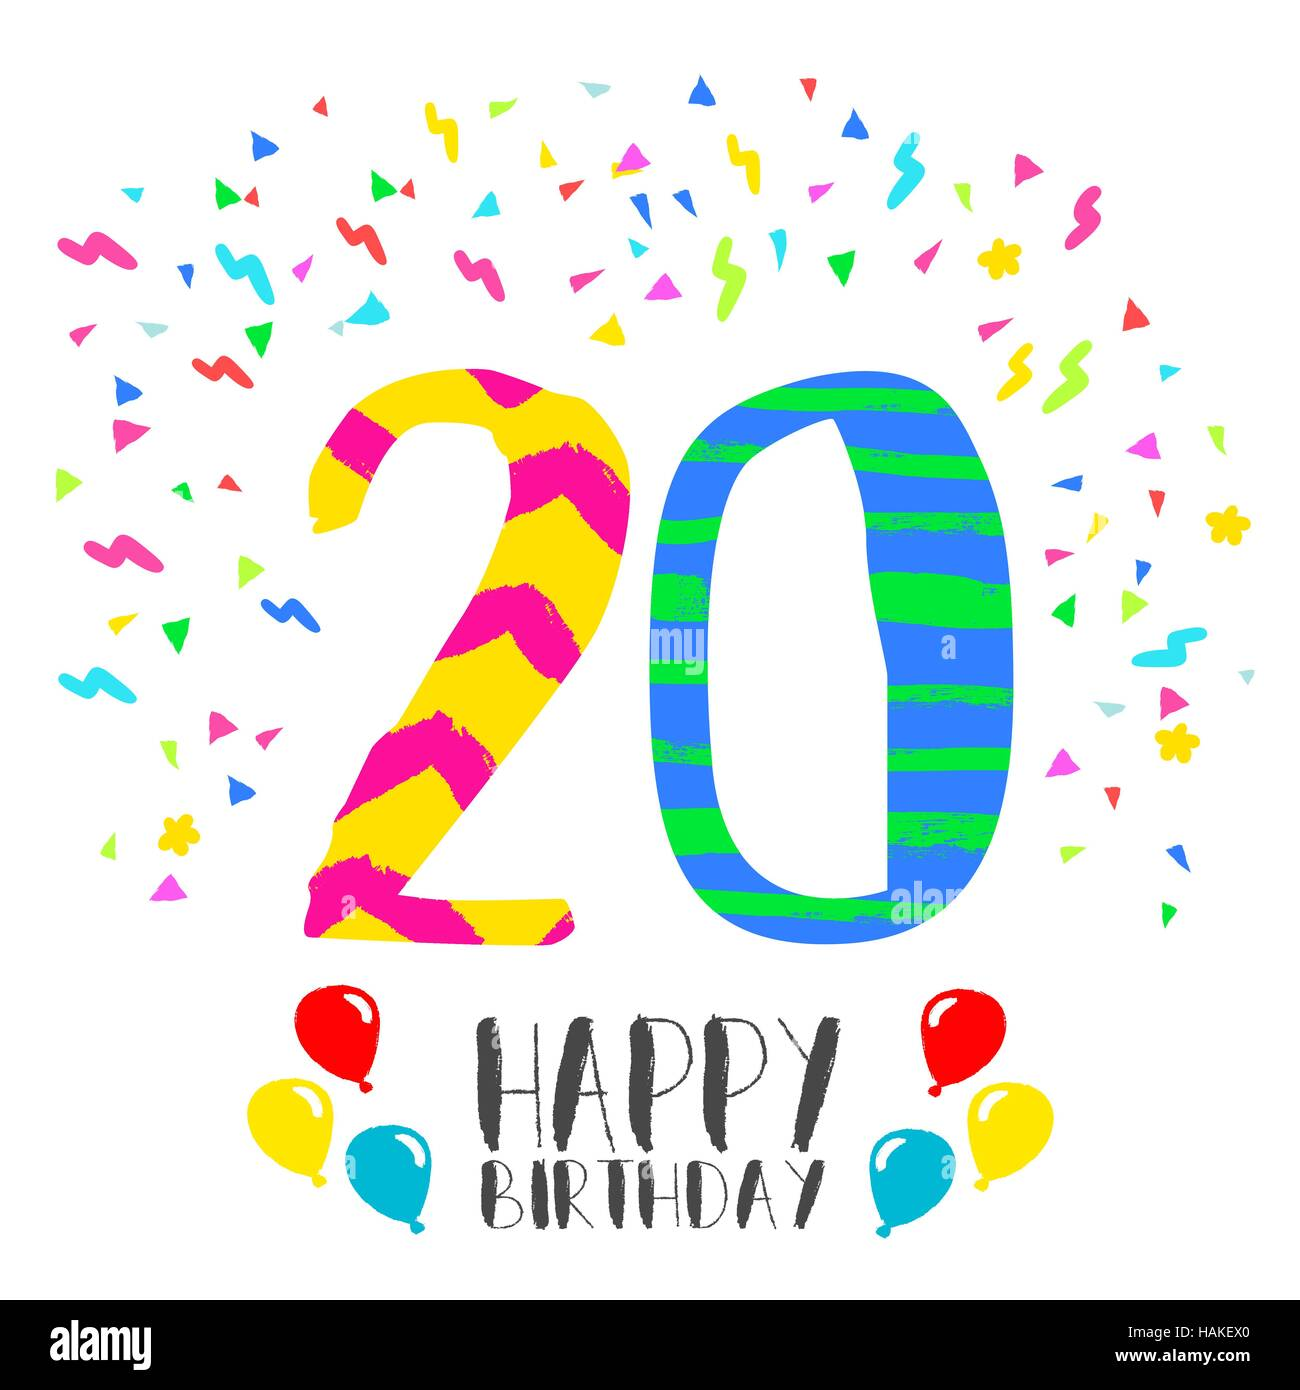 Happy birthday number 20 greeting card for twenty year in fun art happy birthday number 20 greeting card for twenty year in fun art style with party confetti anniversary invitation congratulations or celebration bookmarktalkfo Choice Image